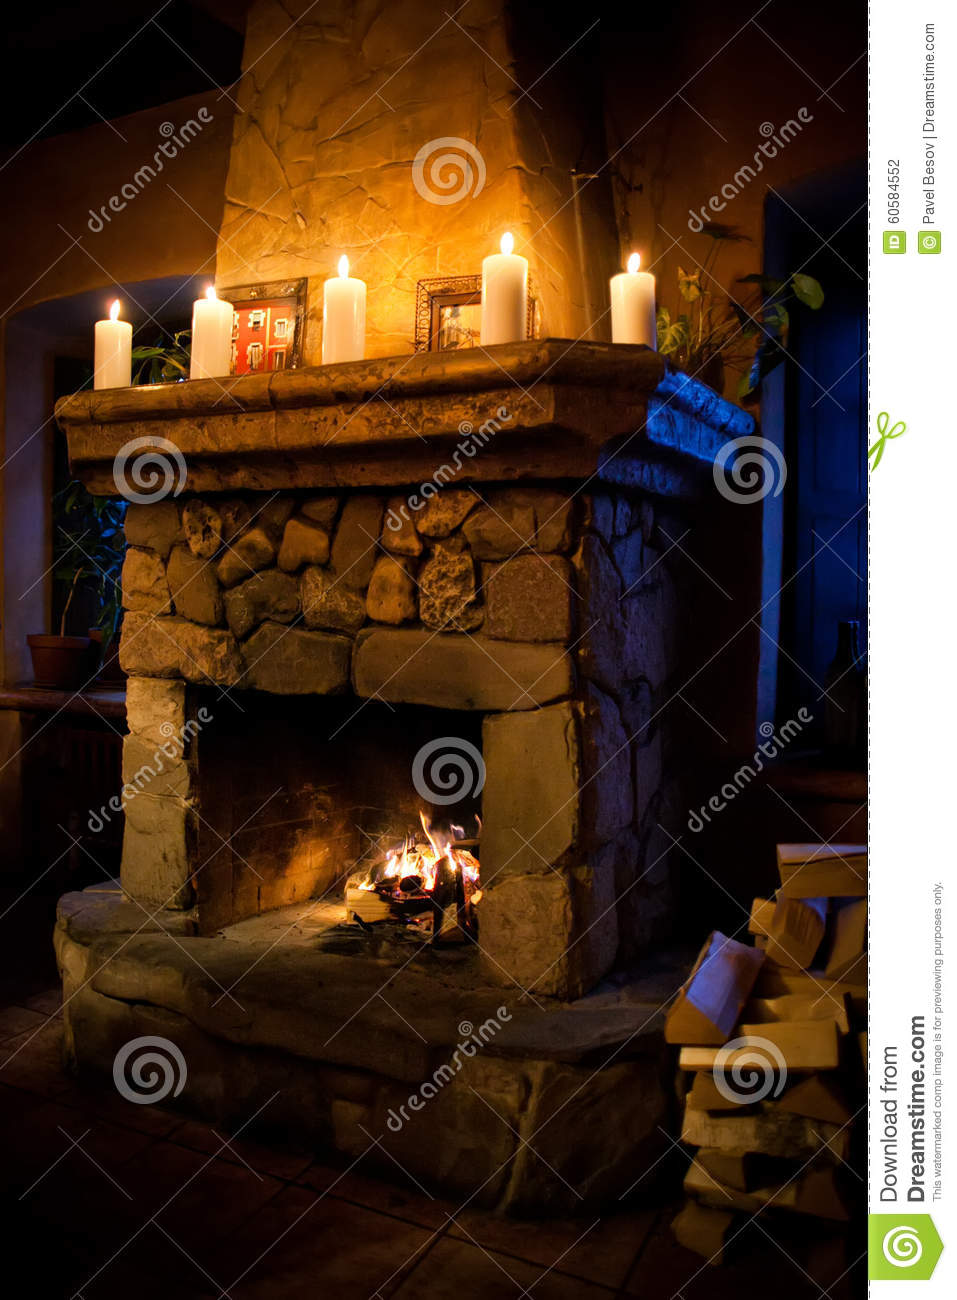 Romantic Christmas Interior. Fireplace Room With Chimney, Candles ...